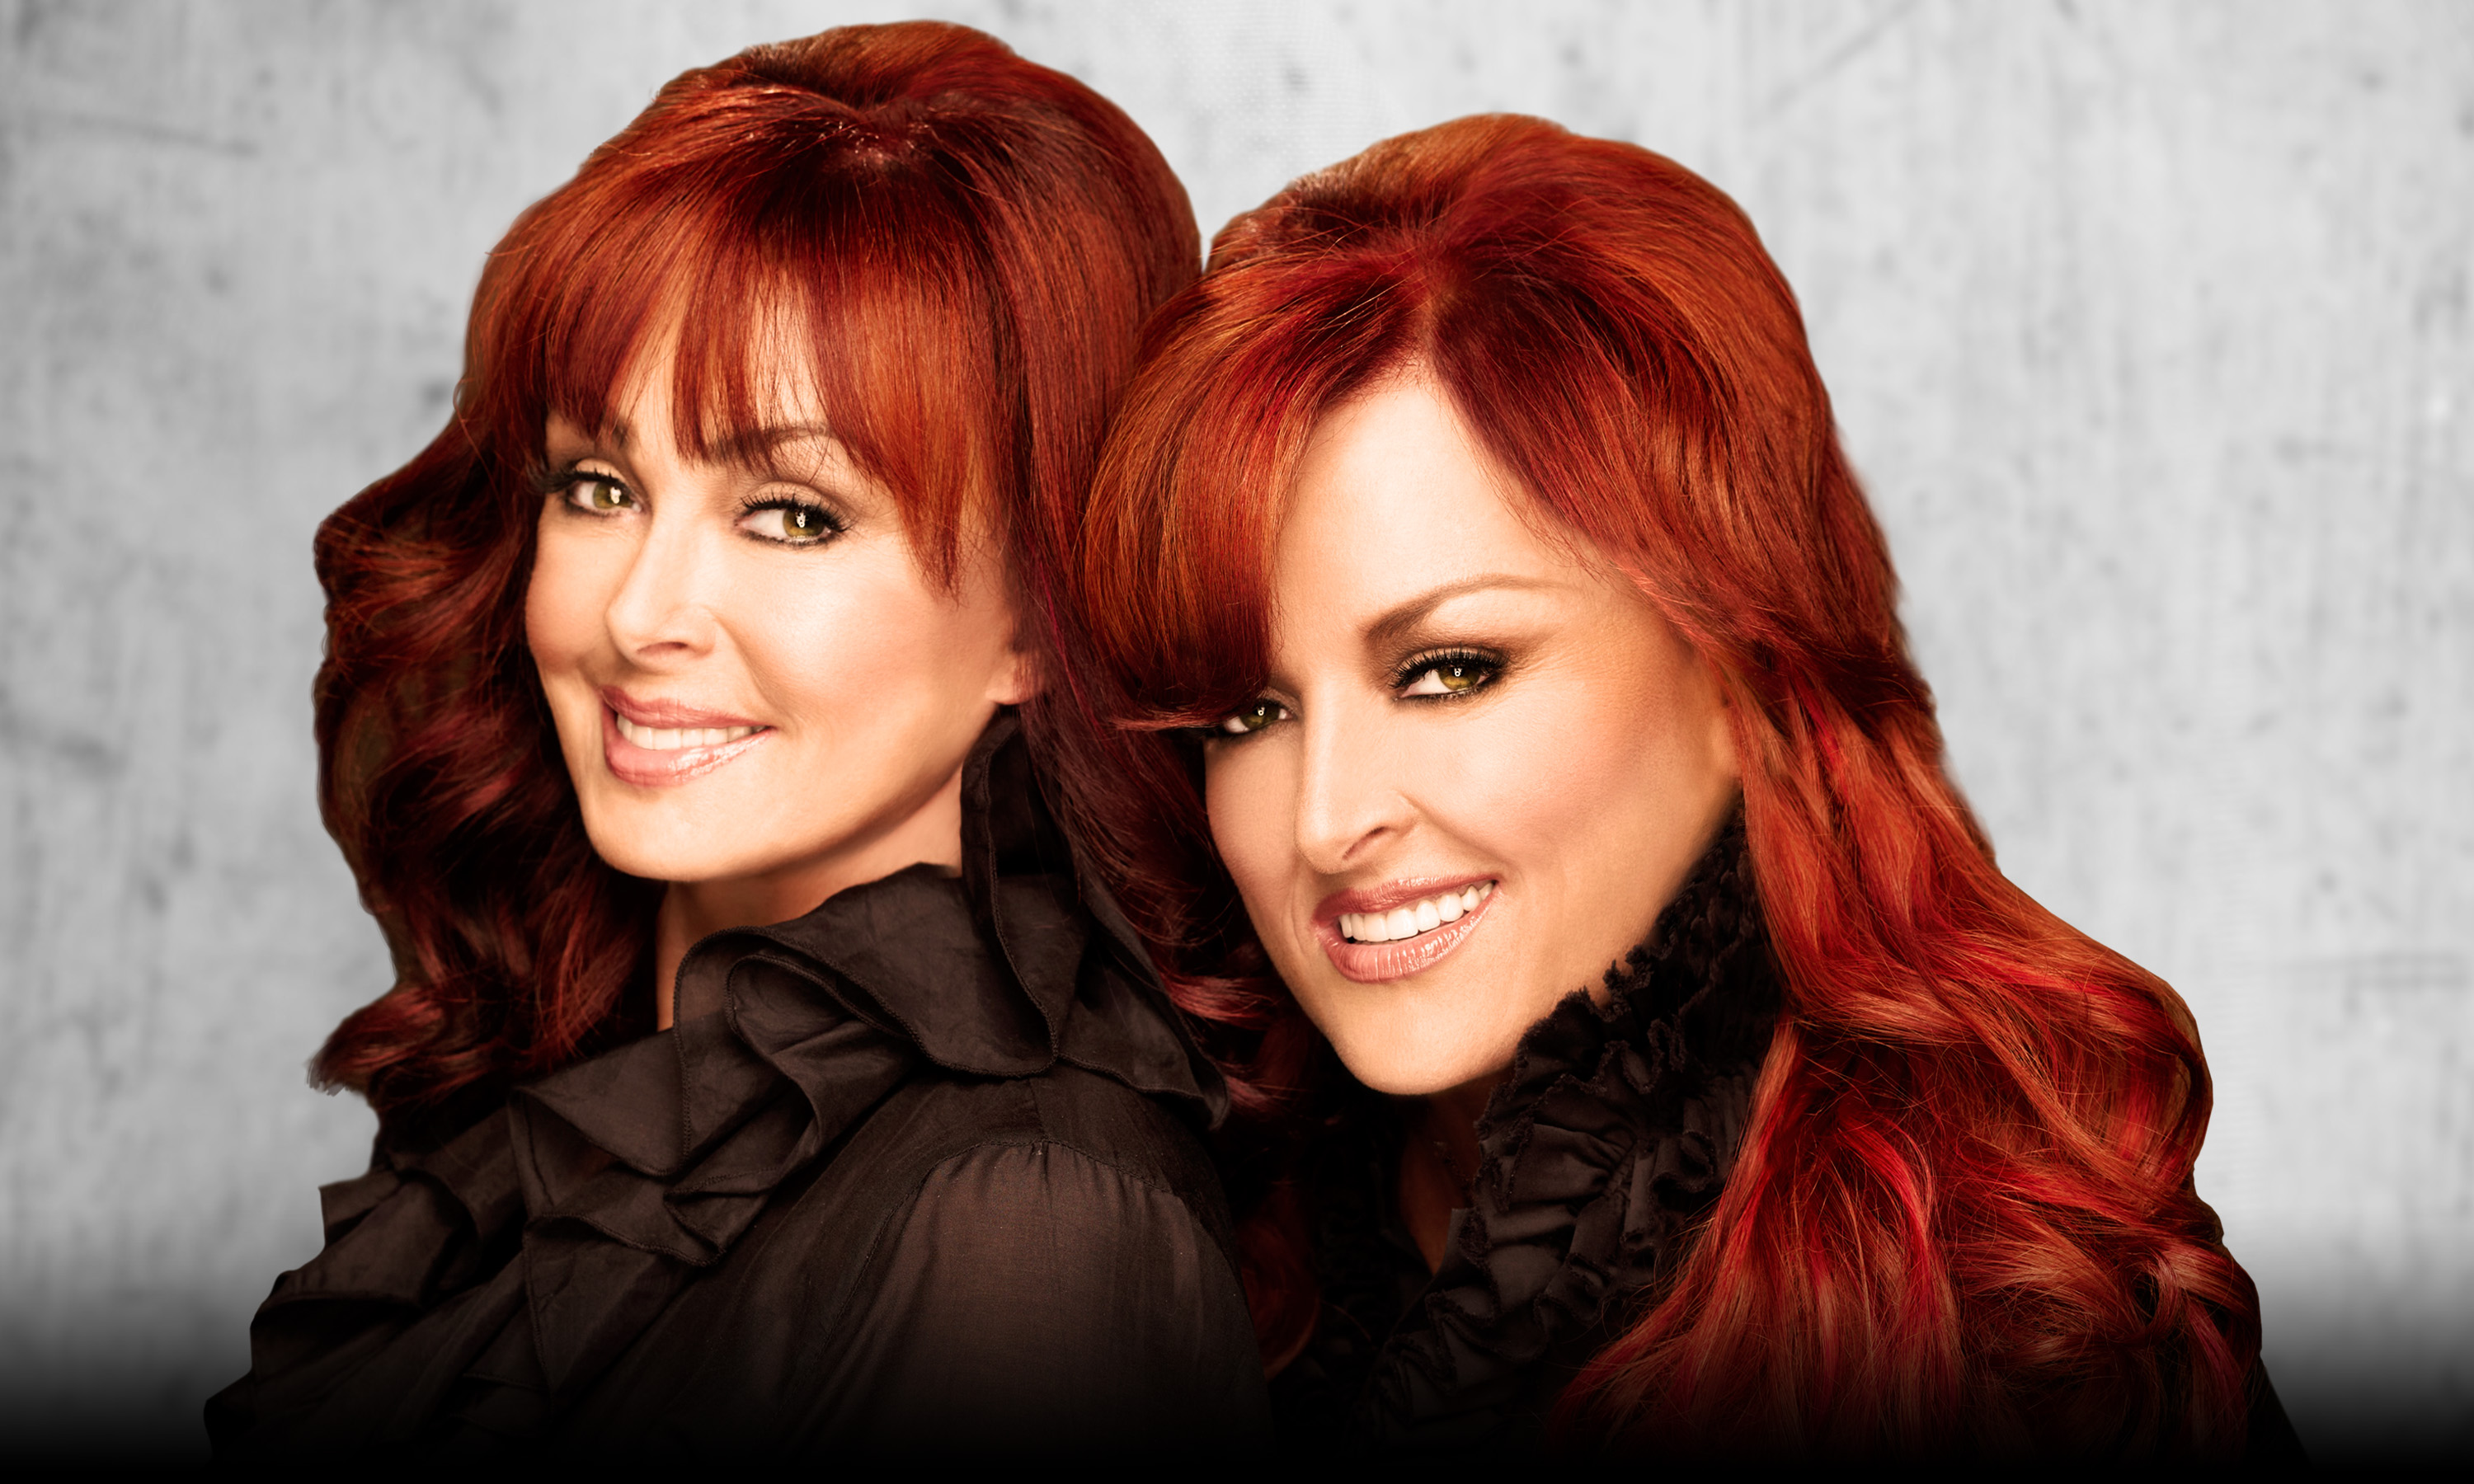 The Judds, Wynonna and Naomi. Not pictured, Ashley or Nelson. Photo courtesy of the Judds.